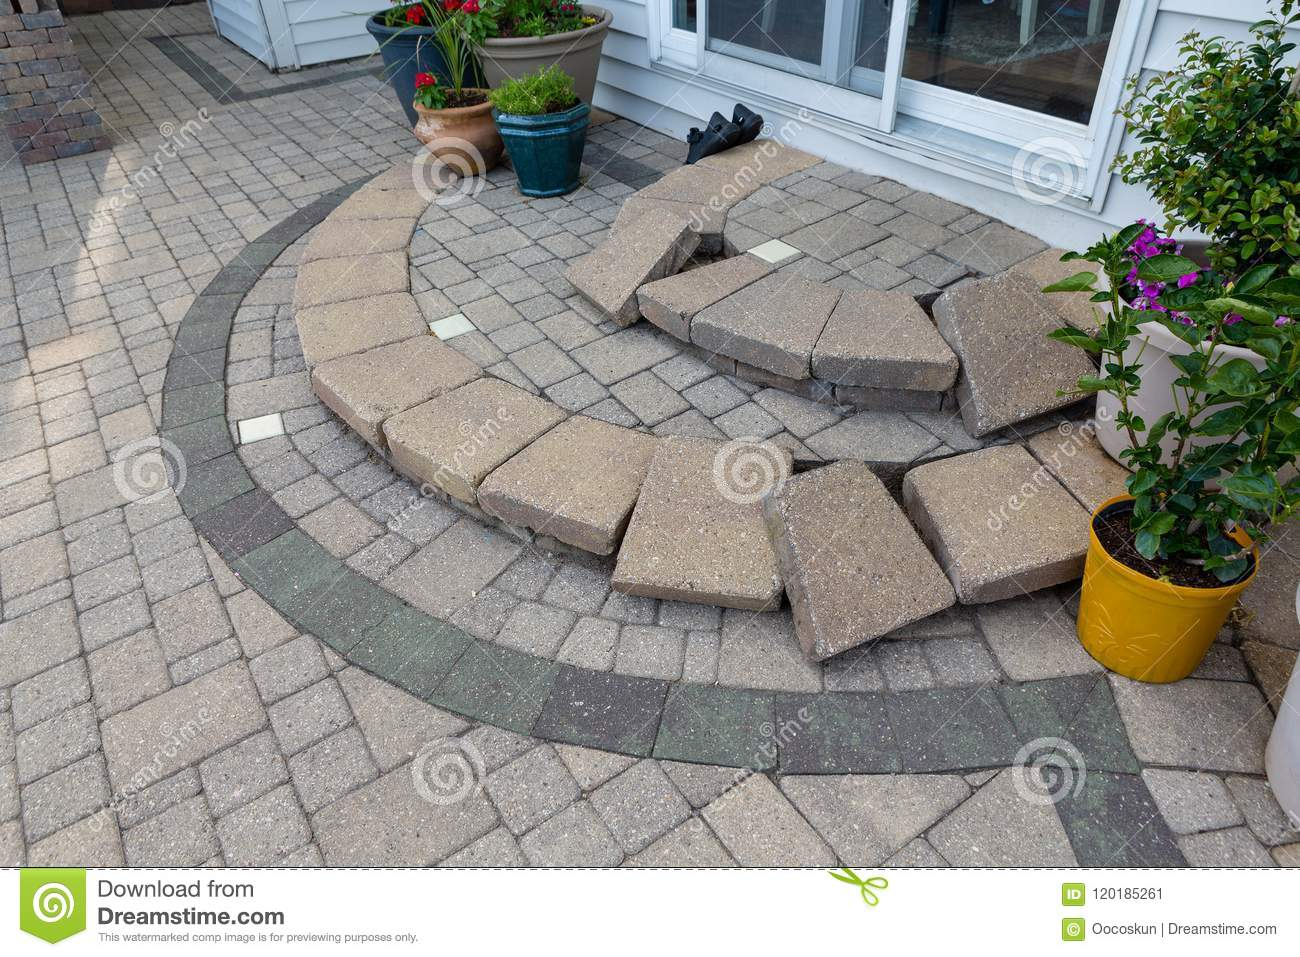 https www dreamstime com replacing paving edging bricks patio steps replacing paving edging bricks curved patio steps front door to image120185261